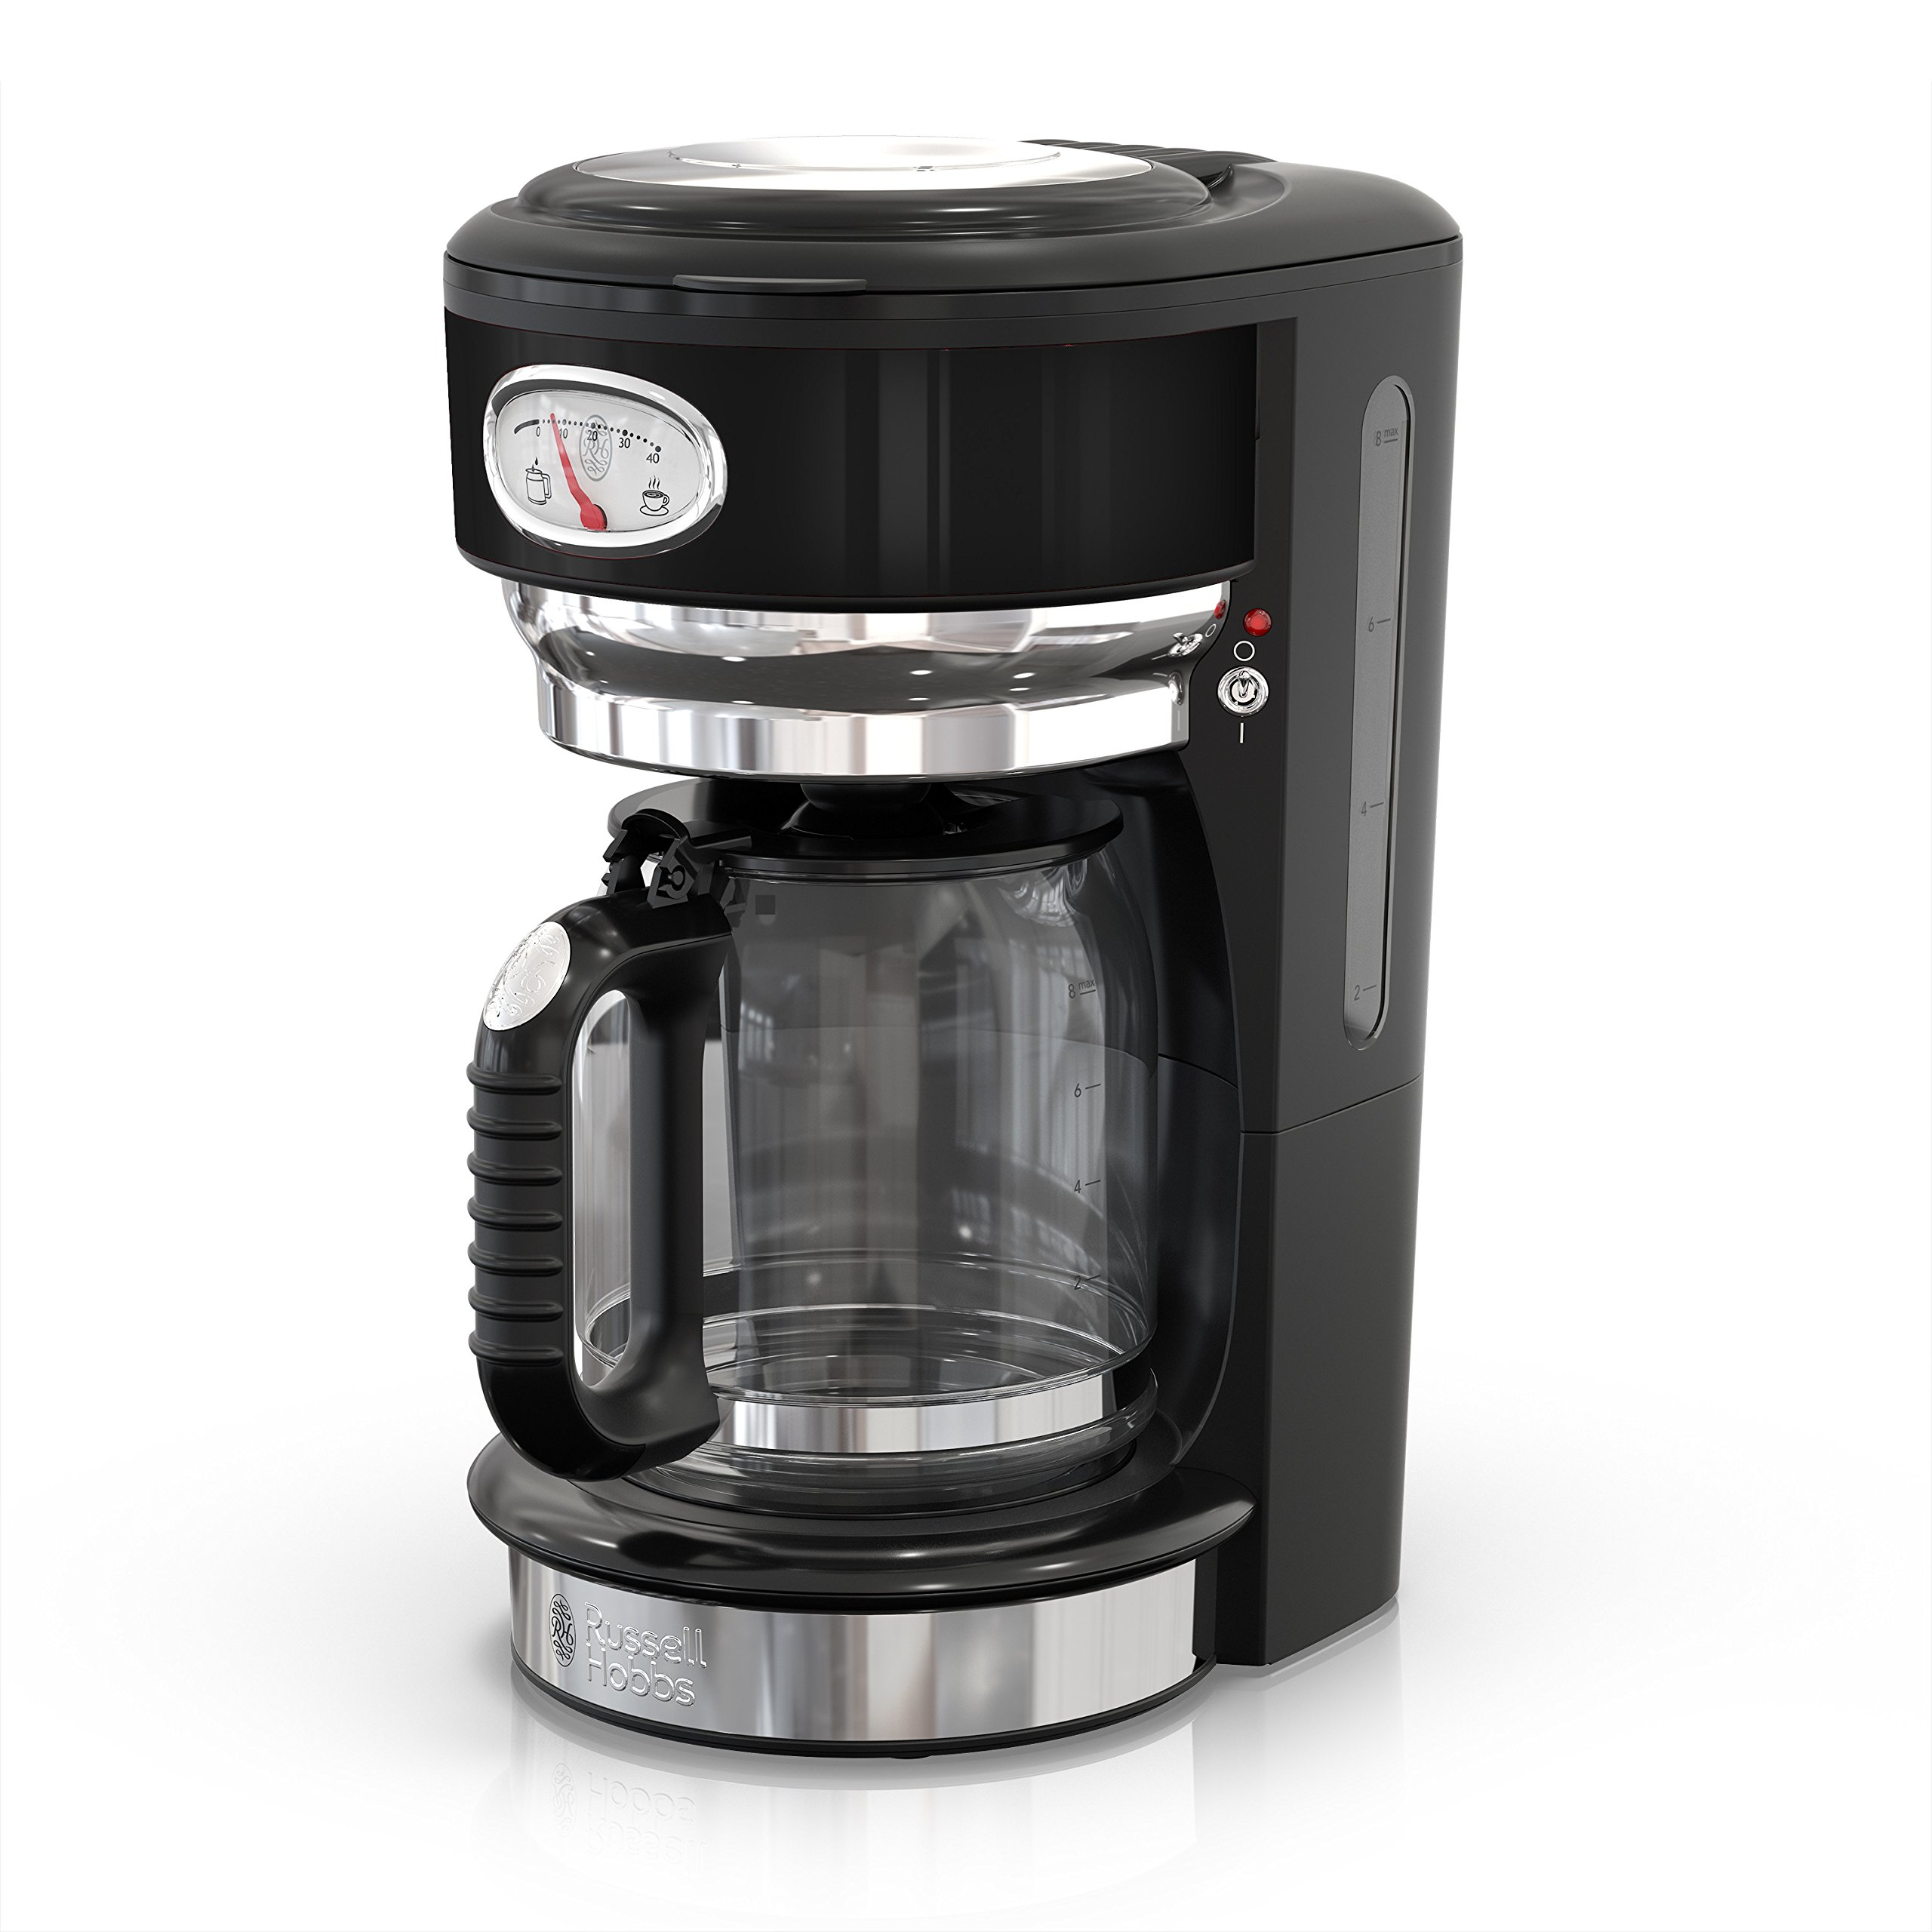 Russell Hobbs CM3100BKR Retro Style Coffeemaker, 10-Cup, Black And Stainless Steel